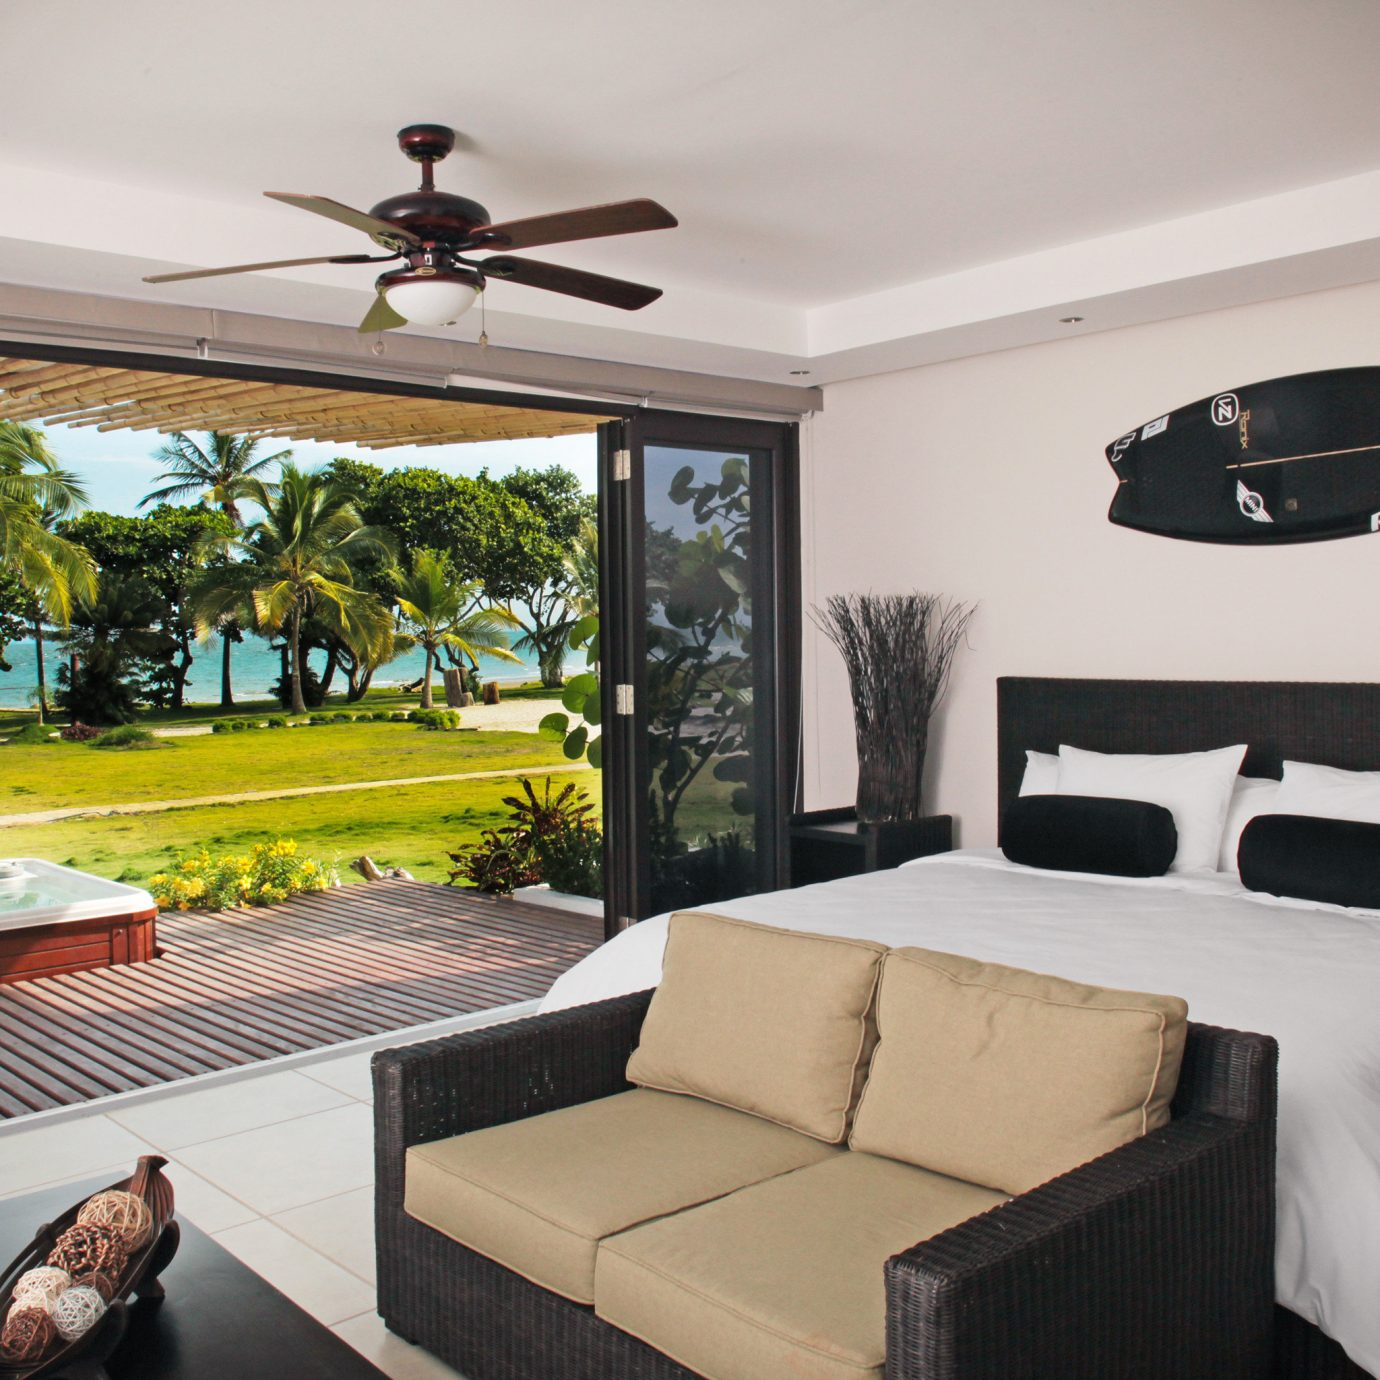 Beachfront Bedroom Classic Modern Scenic views property living room home Villa condominium Suite